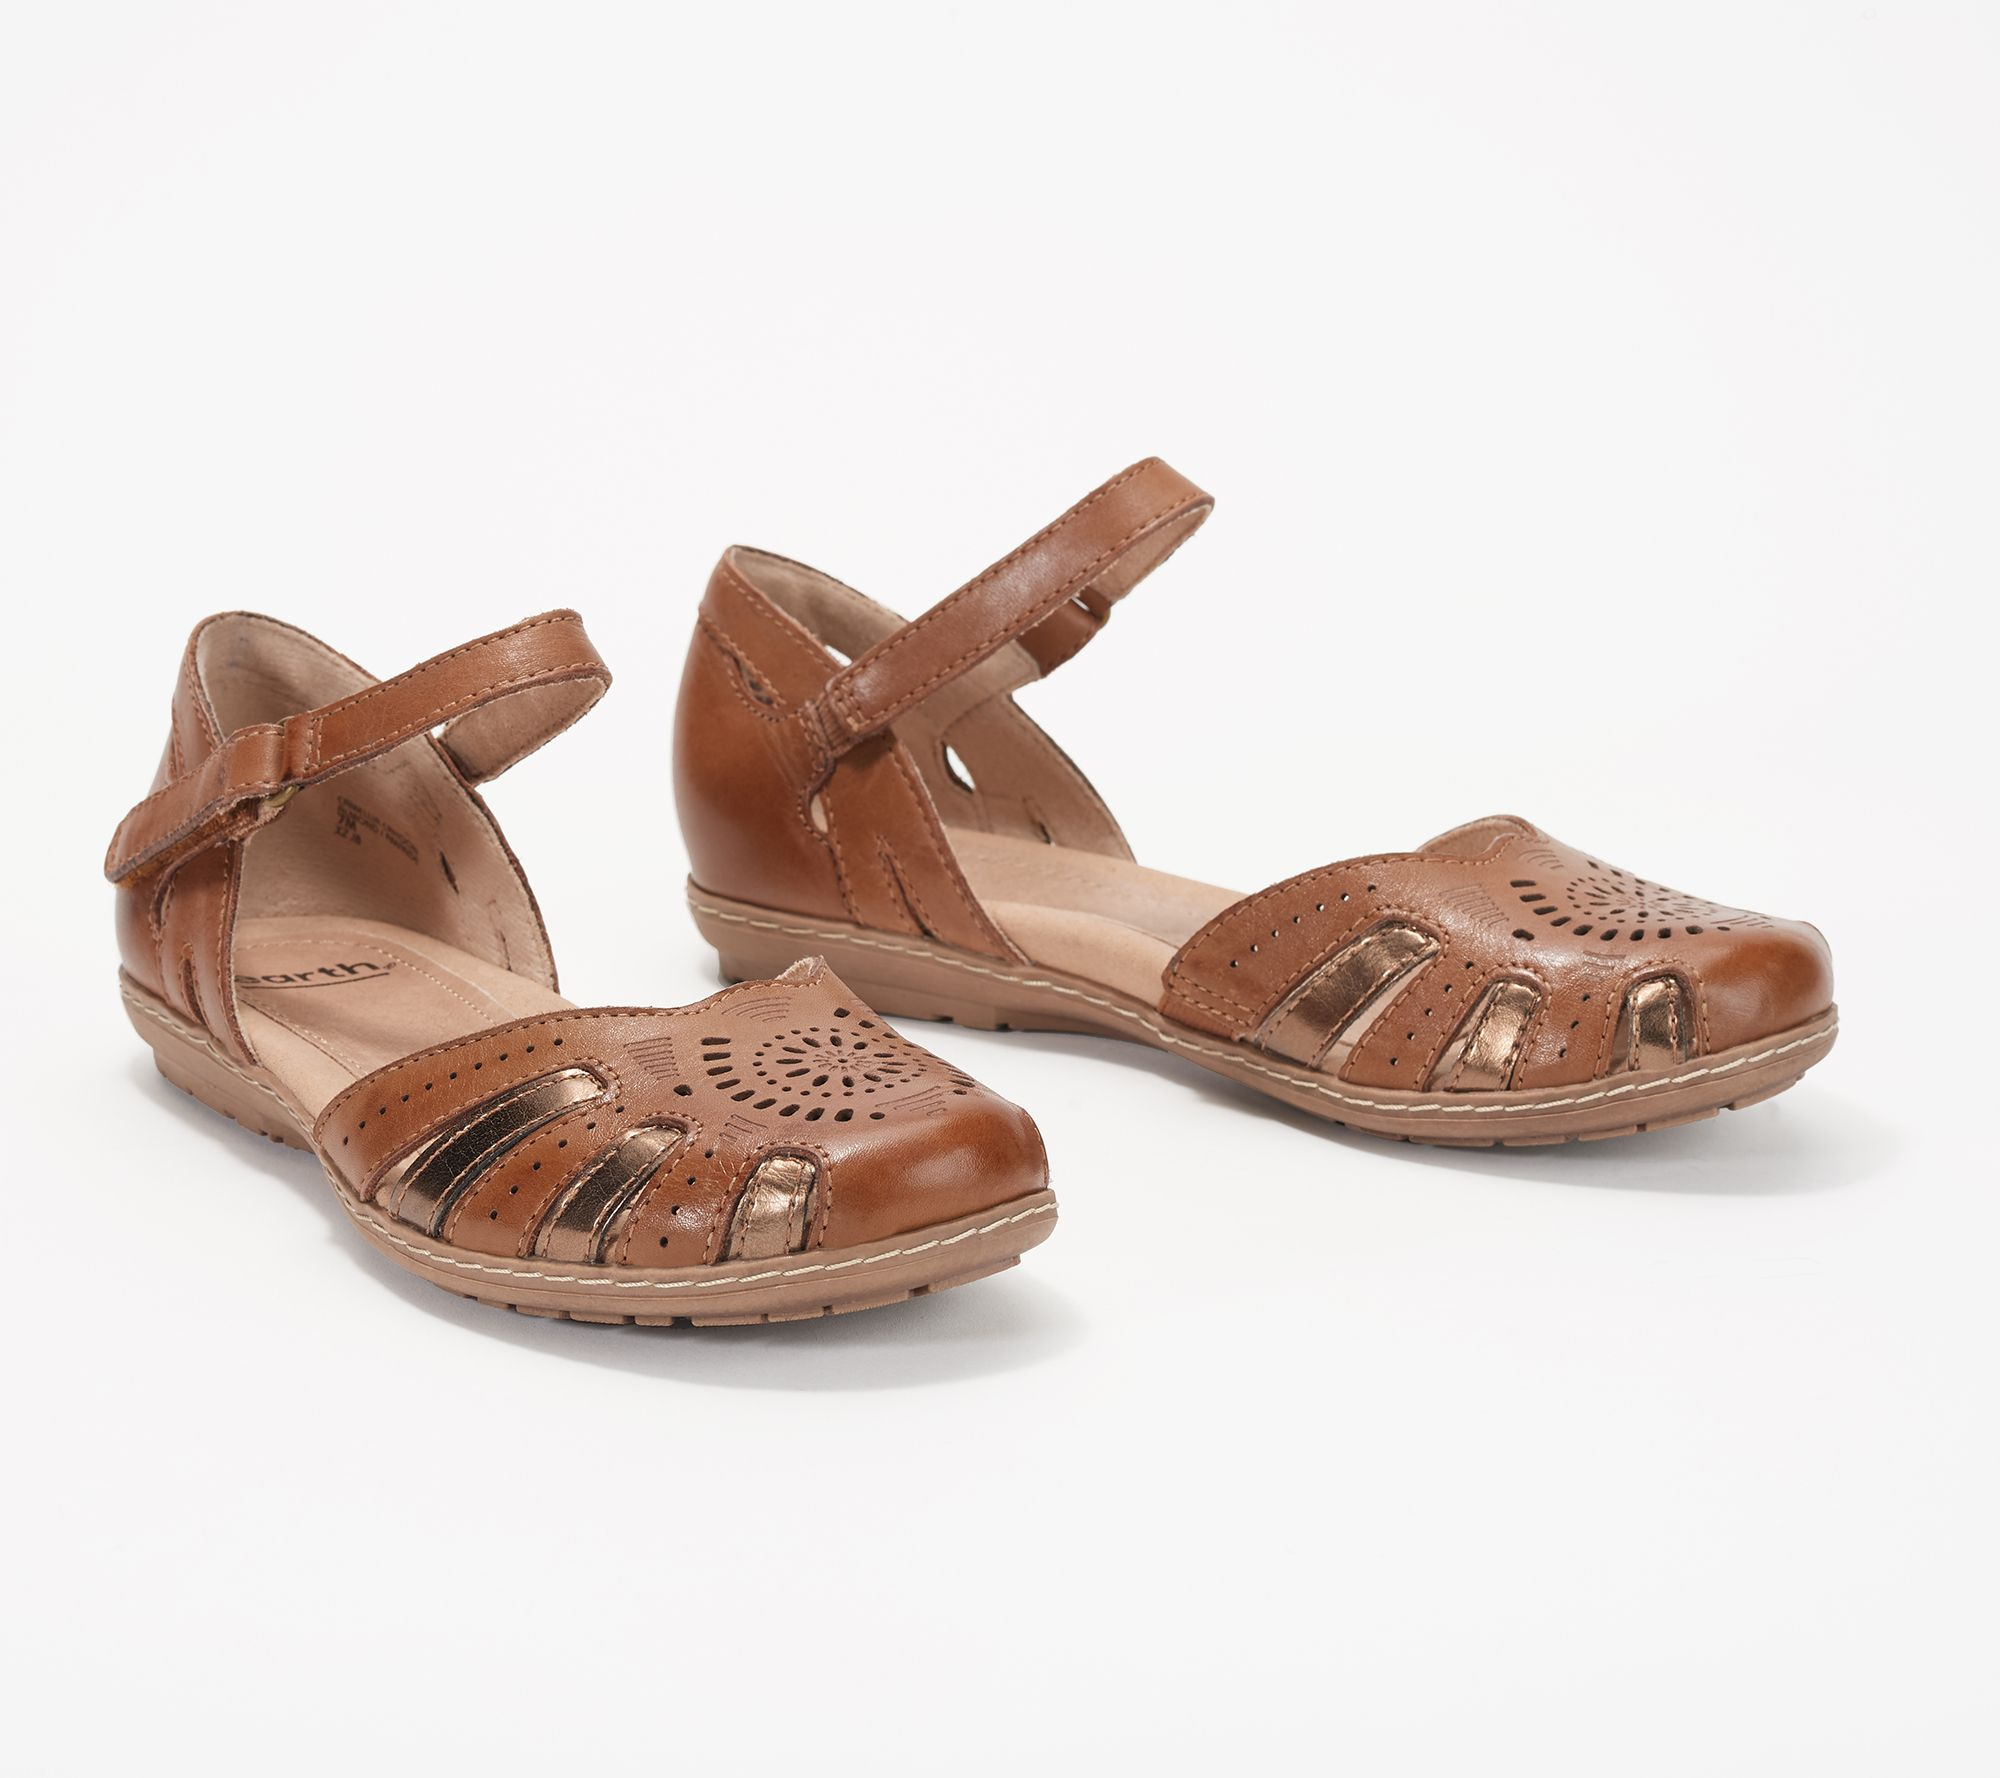 e2dab3625b46 Earth Leather Mary Jane Sandals - Camellia Cahoon - Page 1 — QVC.com